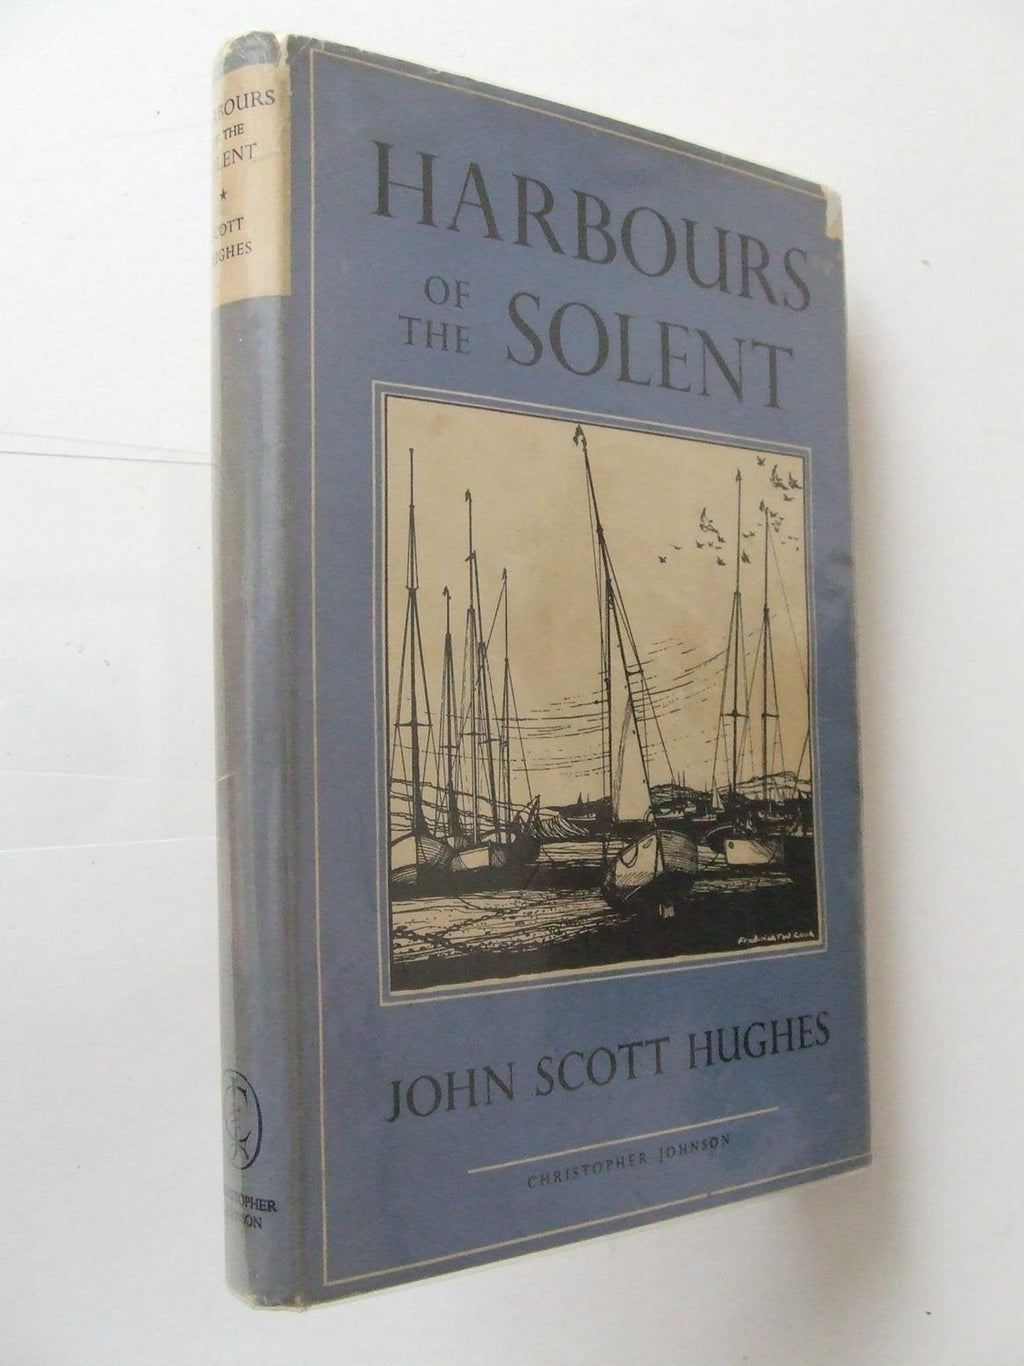 Harbours of the Solent